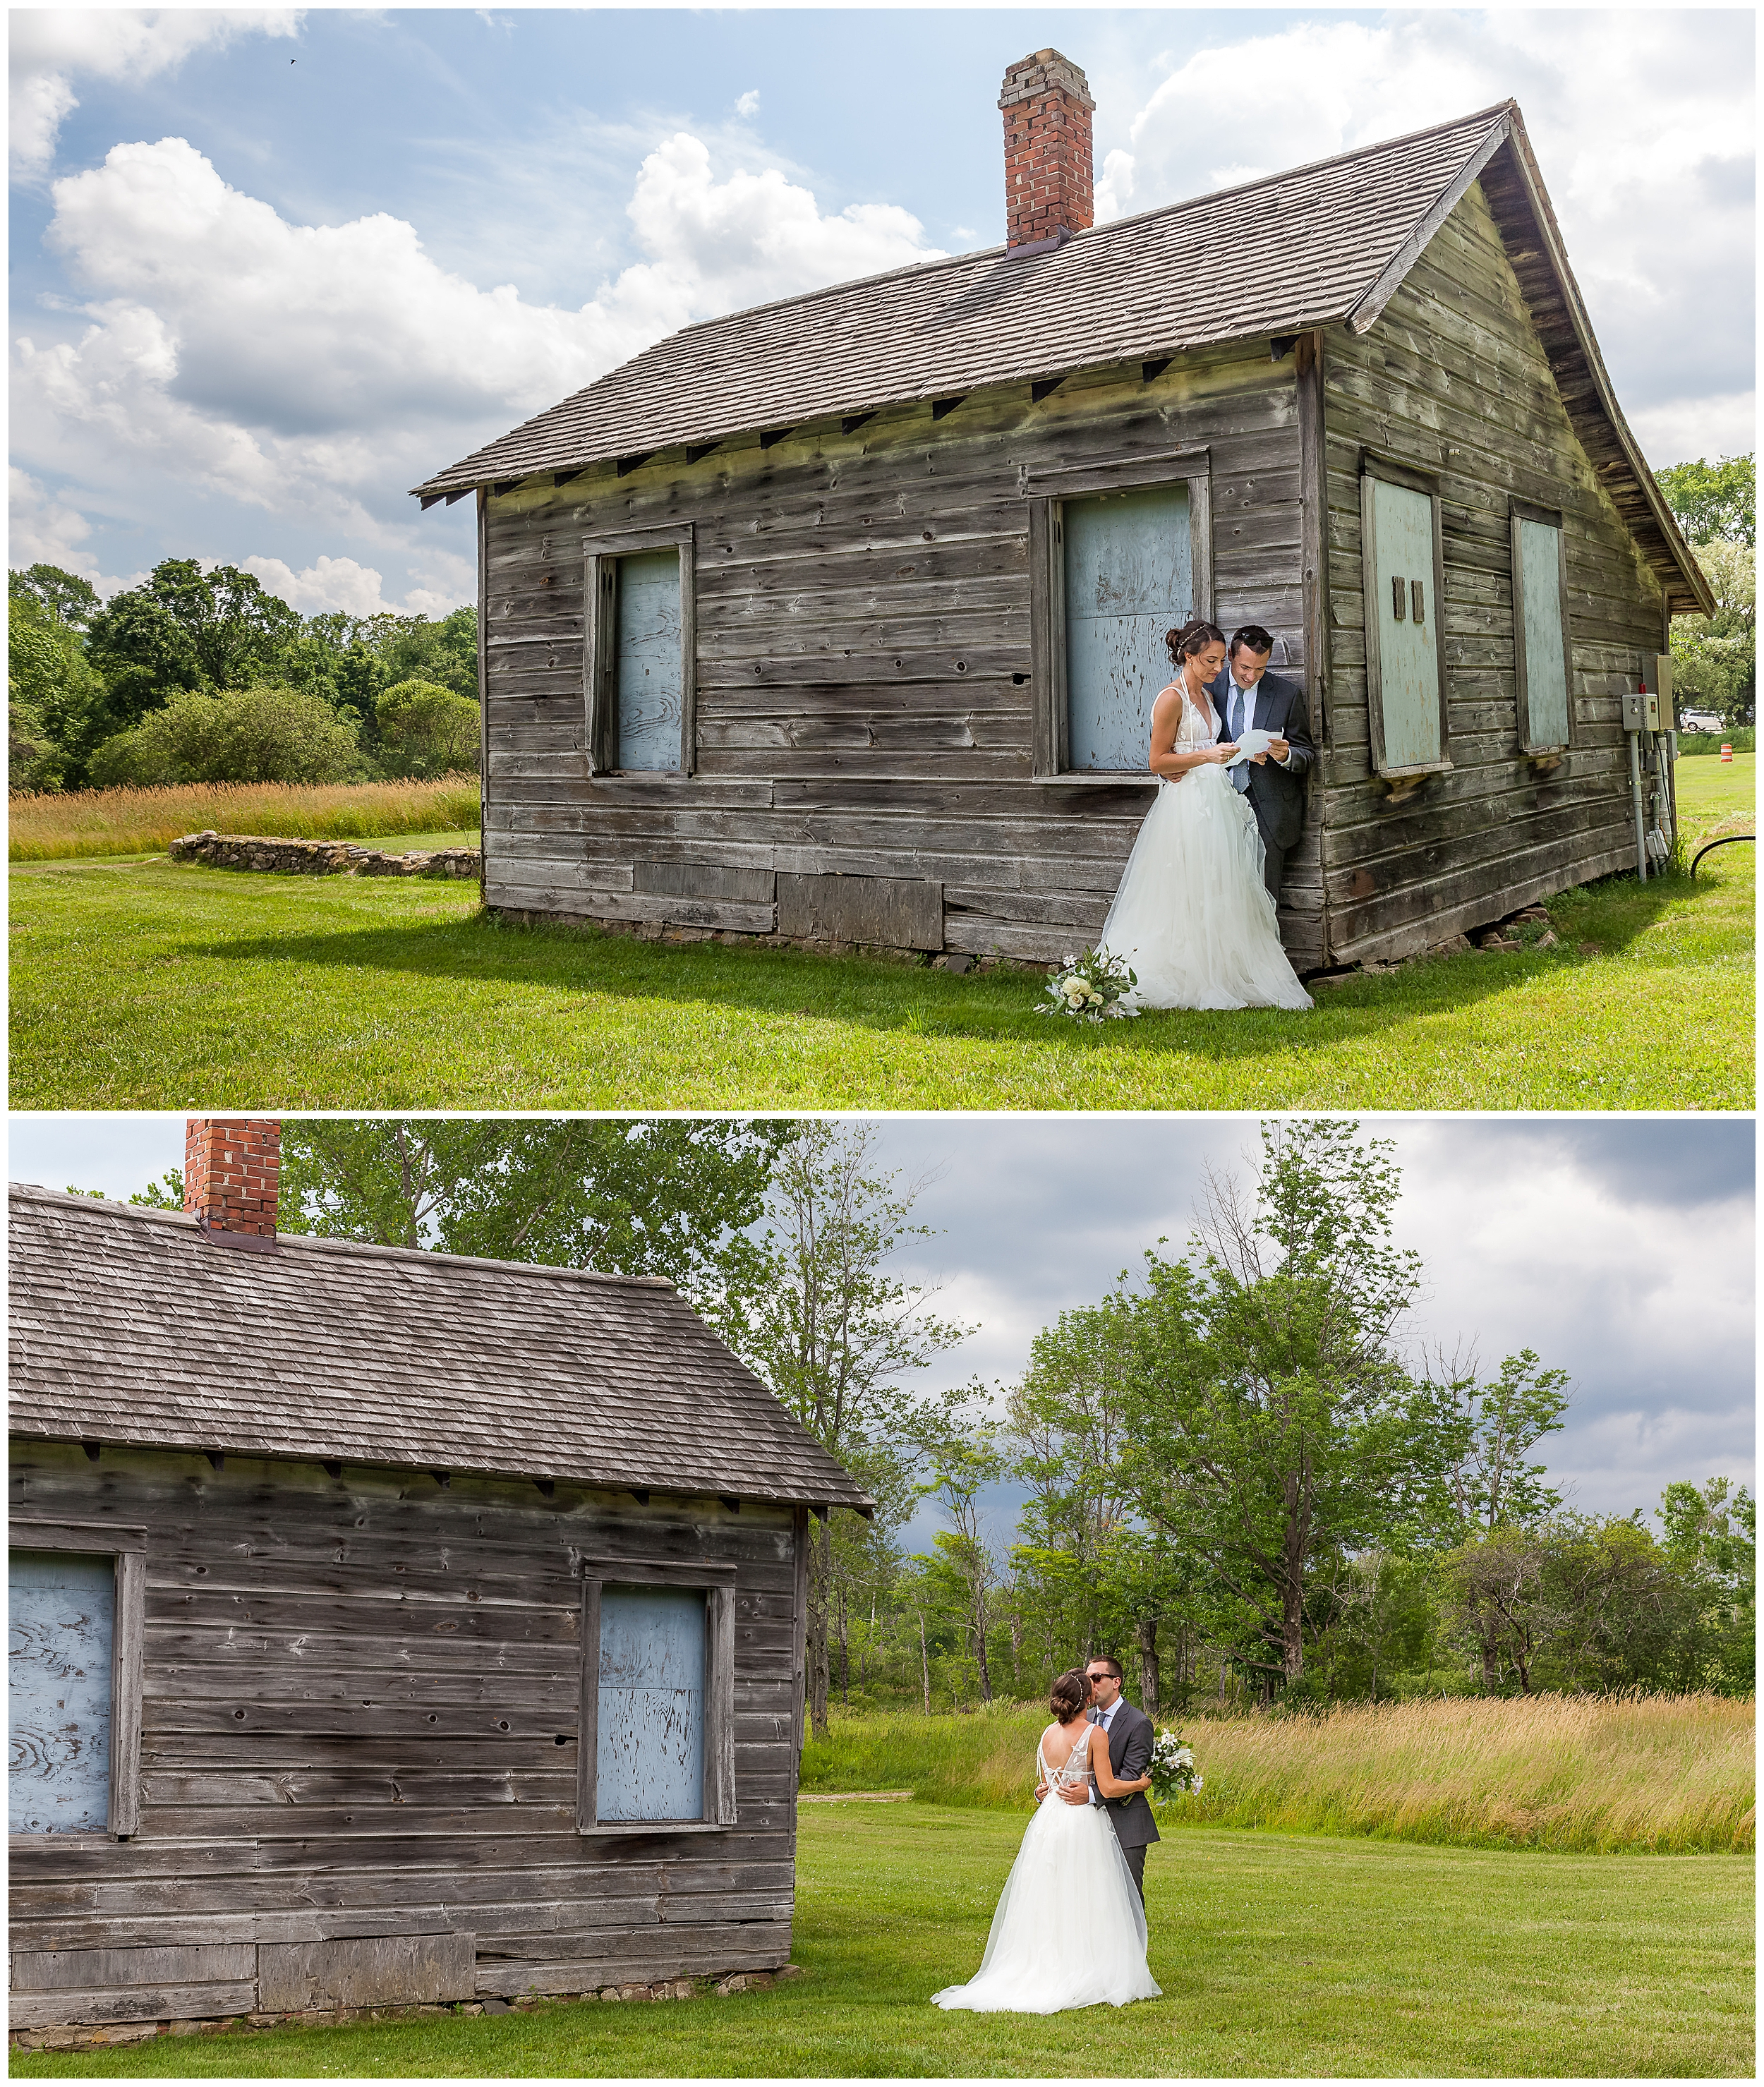 As sun turns to clouds, the couple weathers the storm like champions and focus on the excitement of having an intimate wedding in the loft where guests would stand around them.